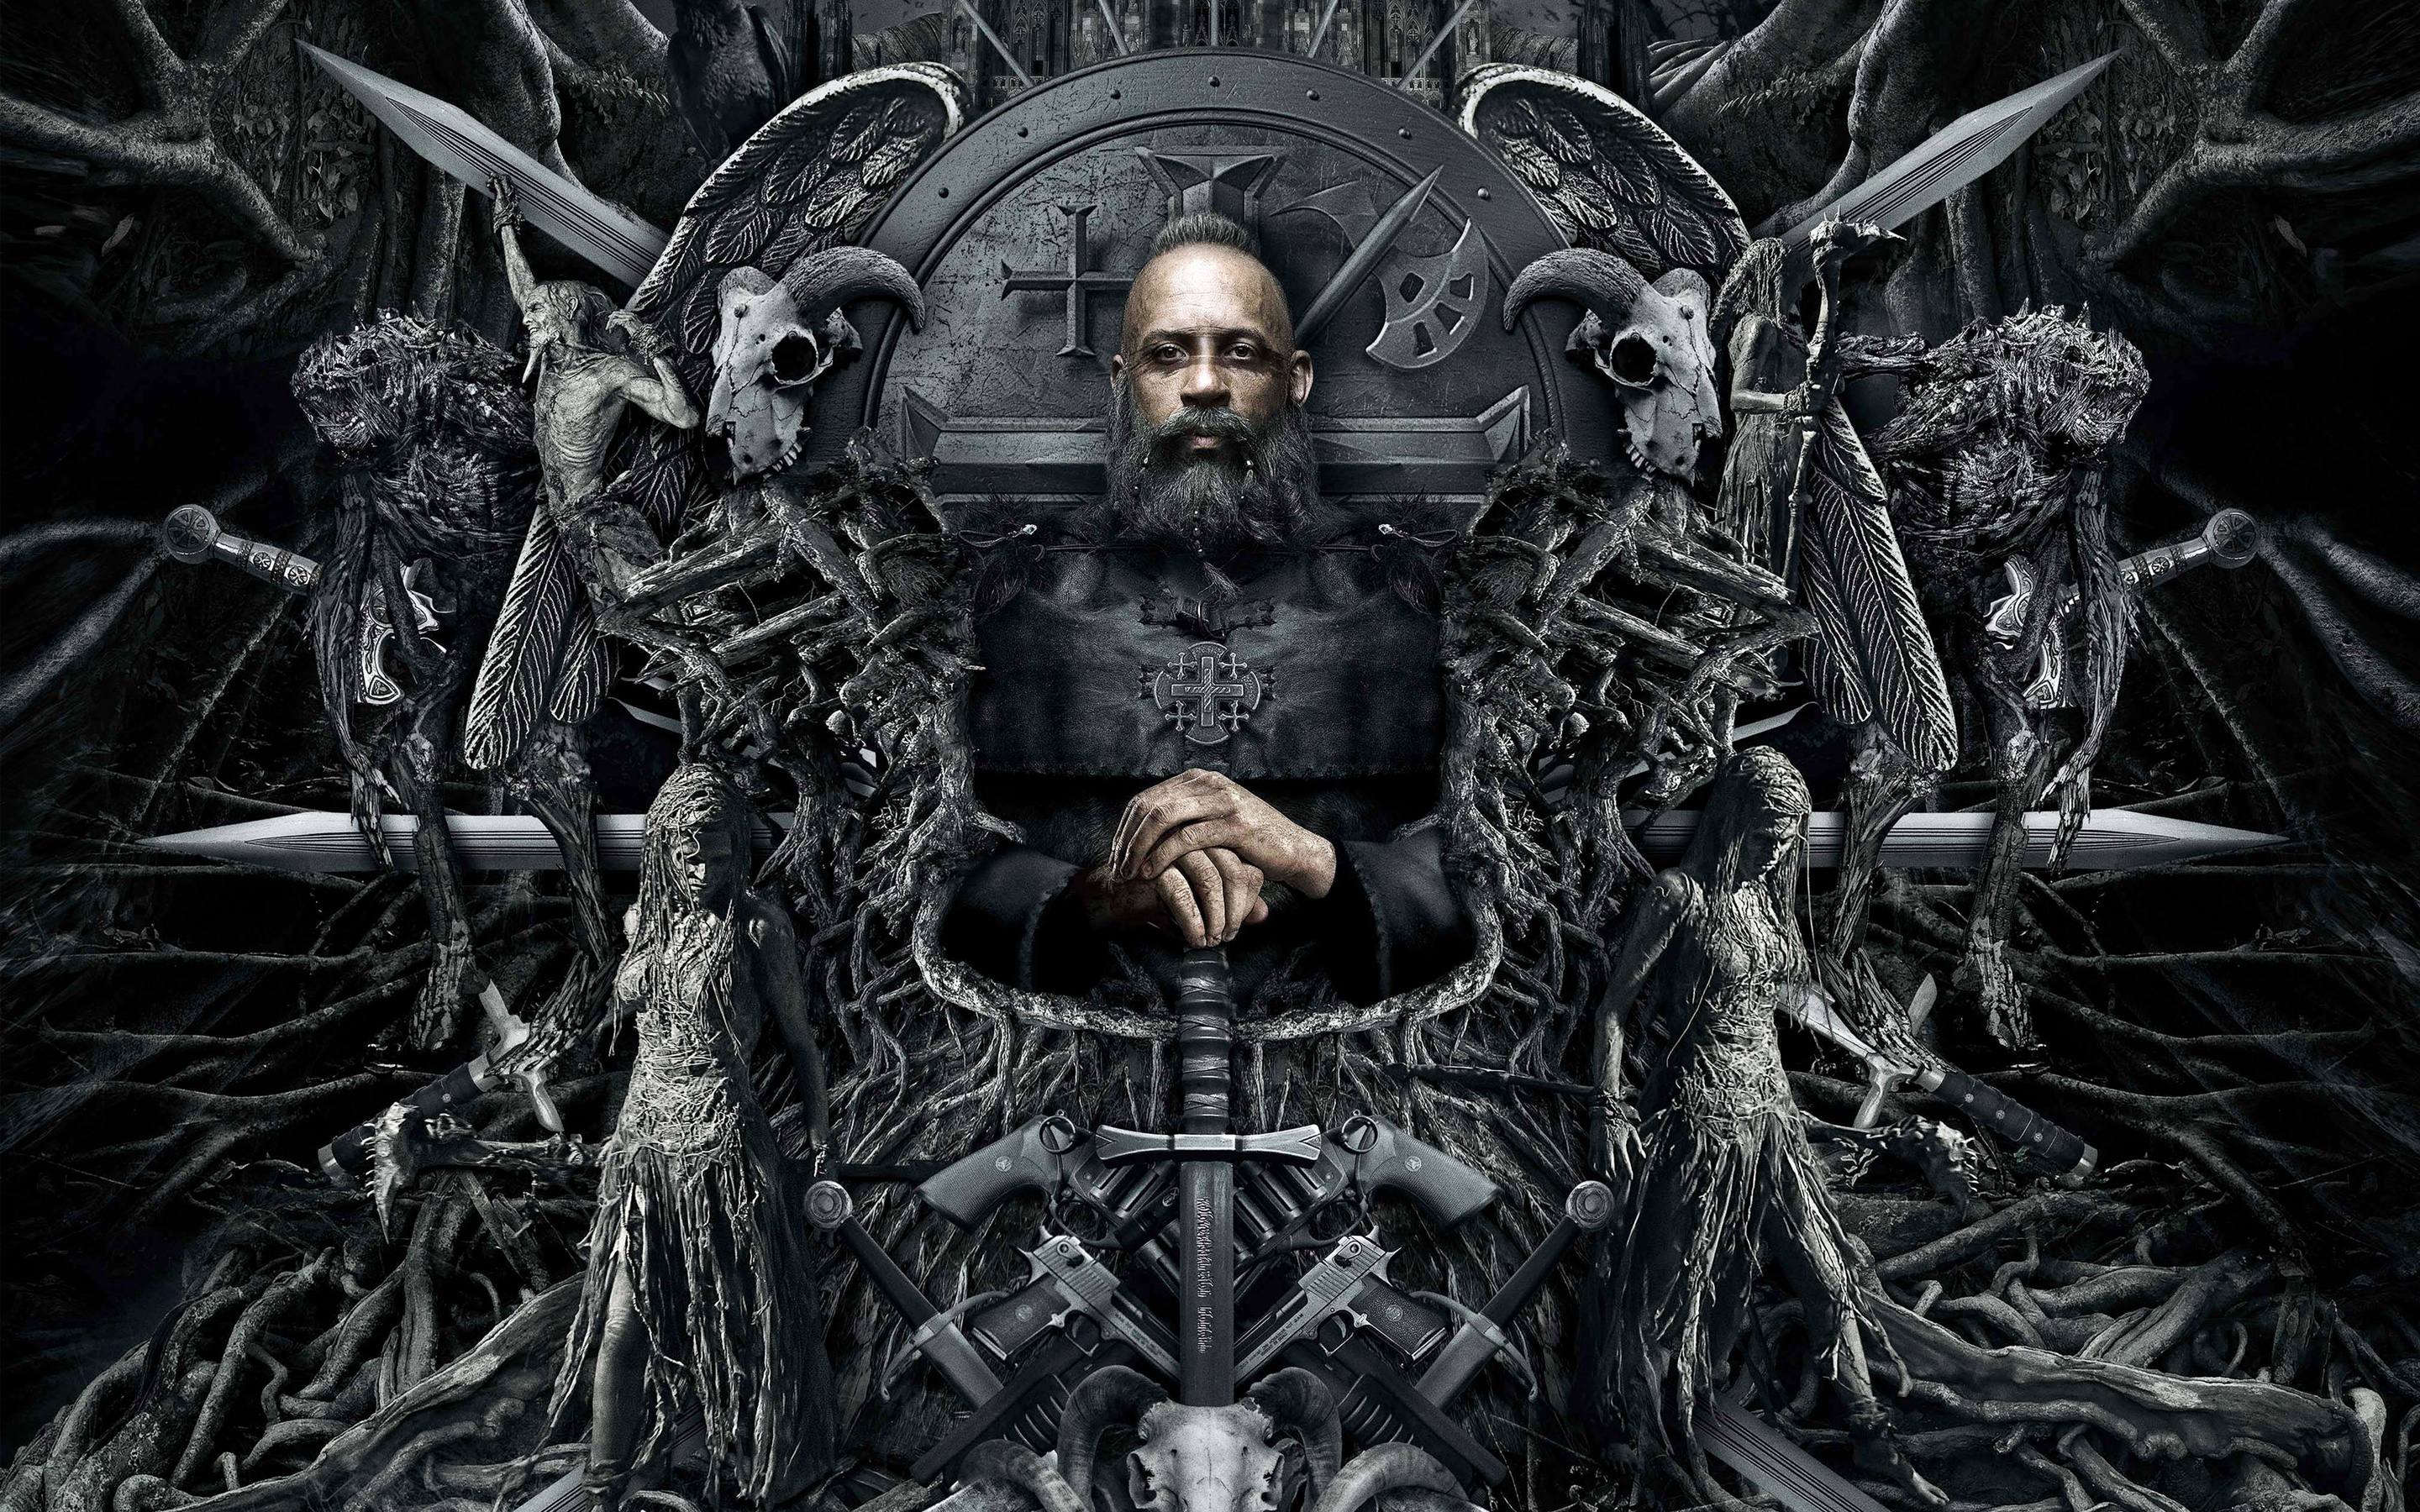 Vin Diesel The Last Witch Hunter 20968 wallpaper